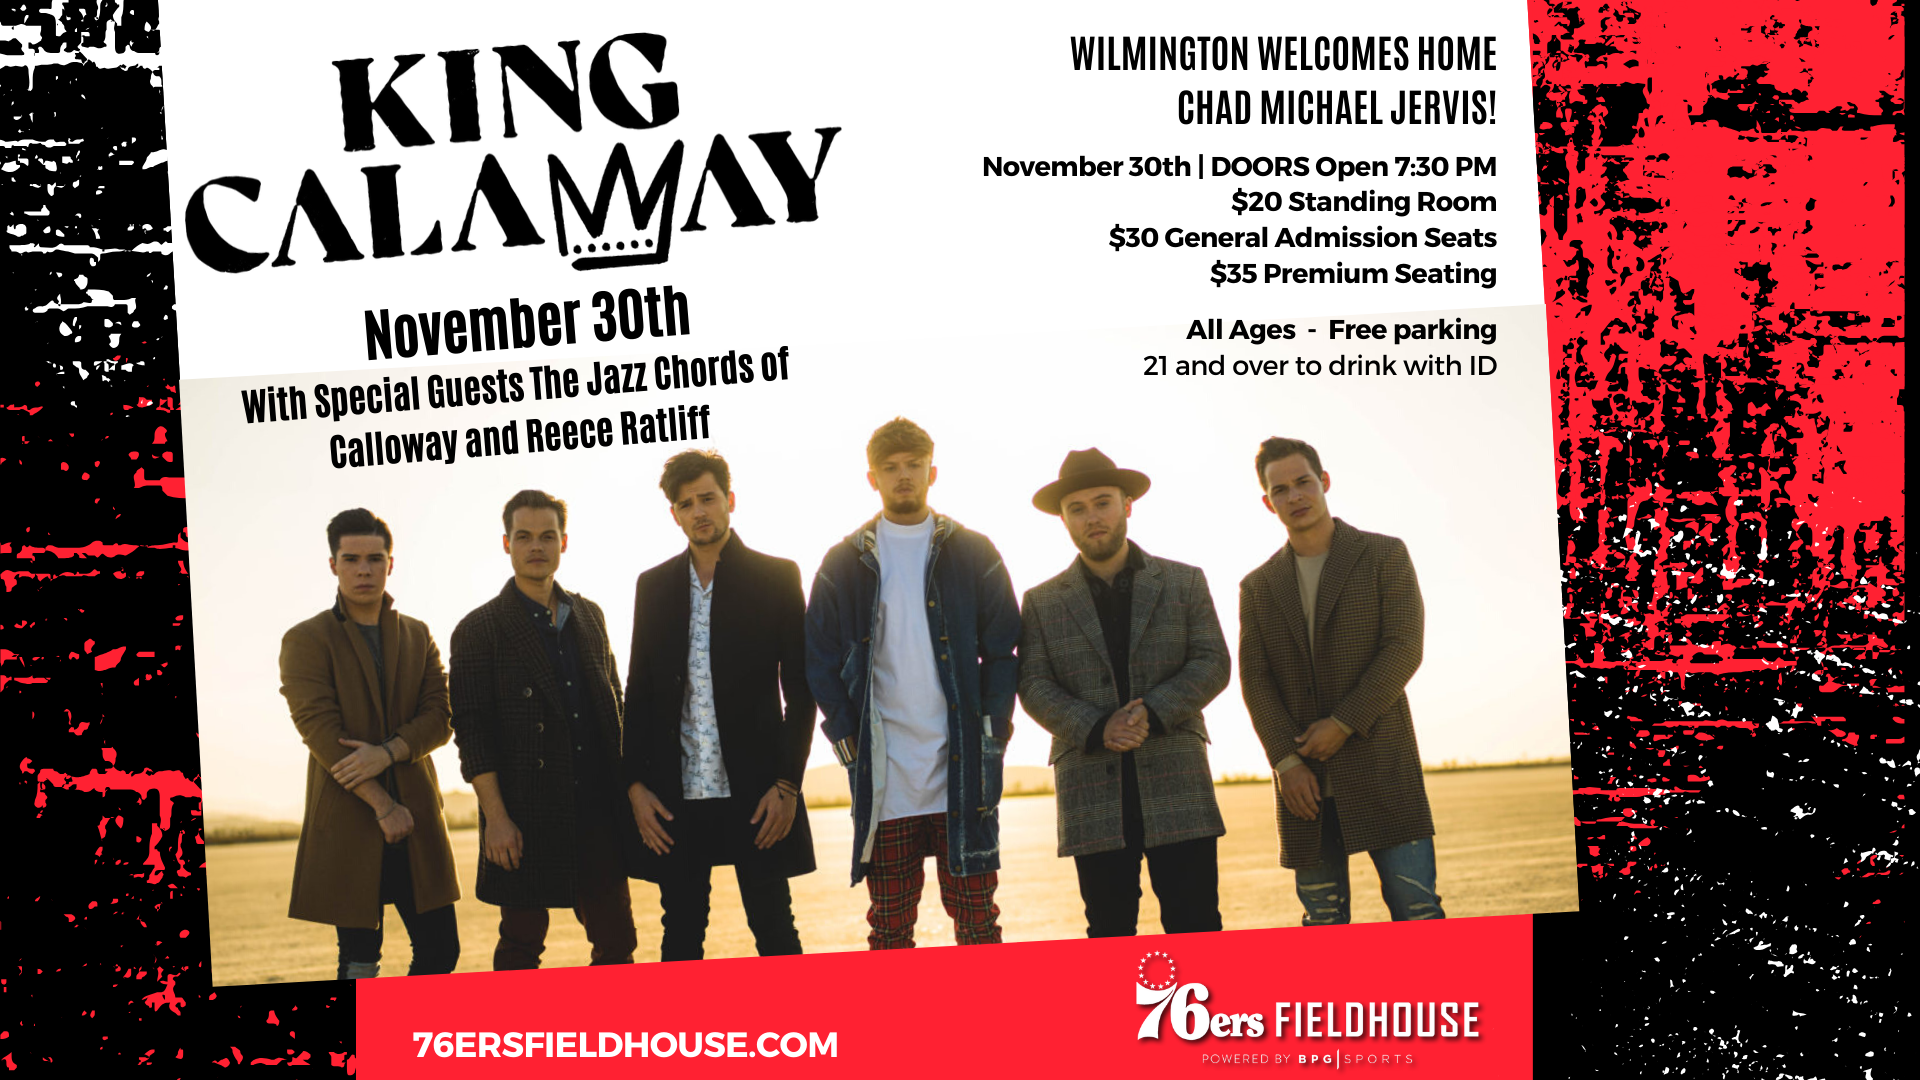 King Calaway Concert at 76ers Fieldhouse November 30